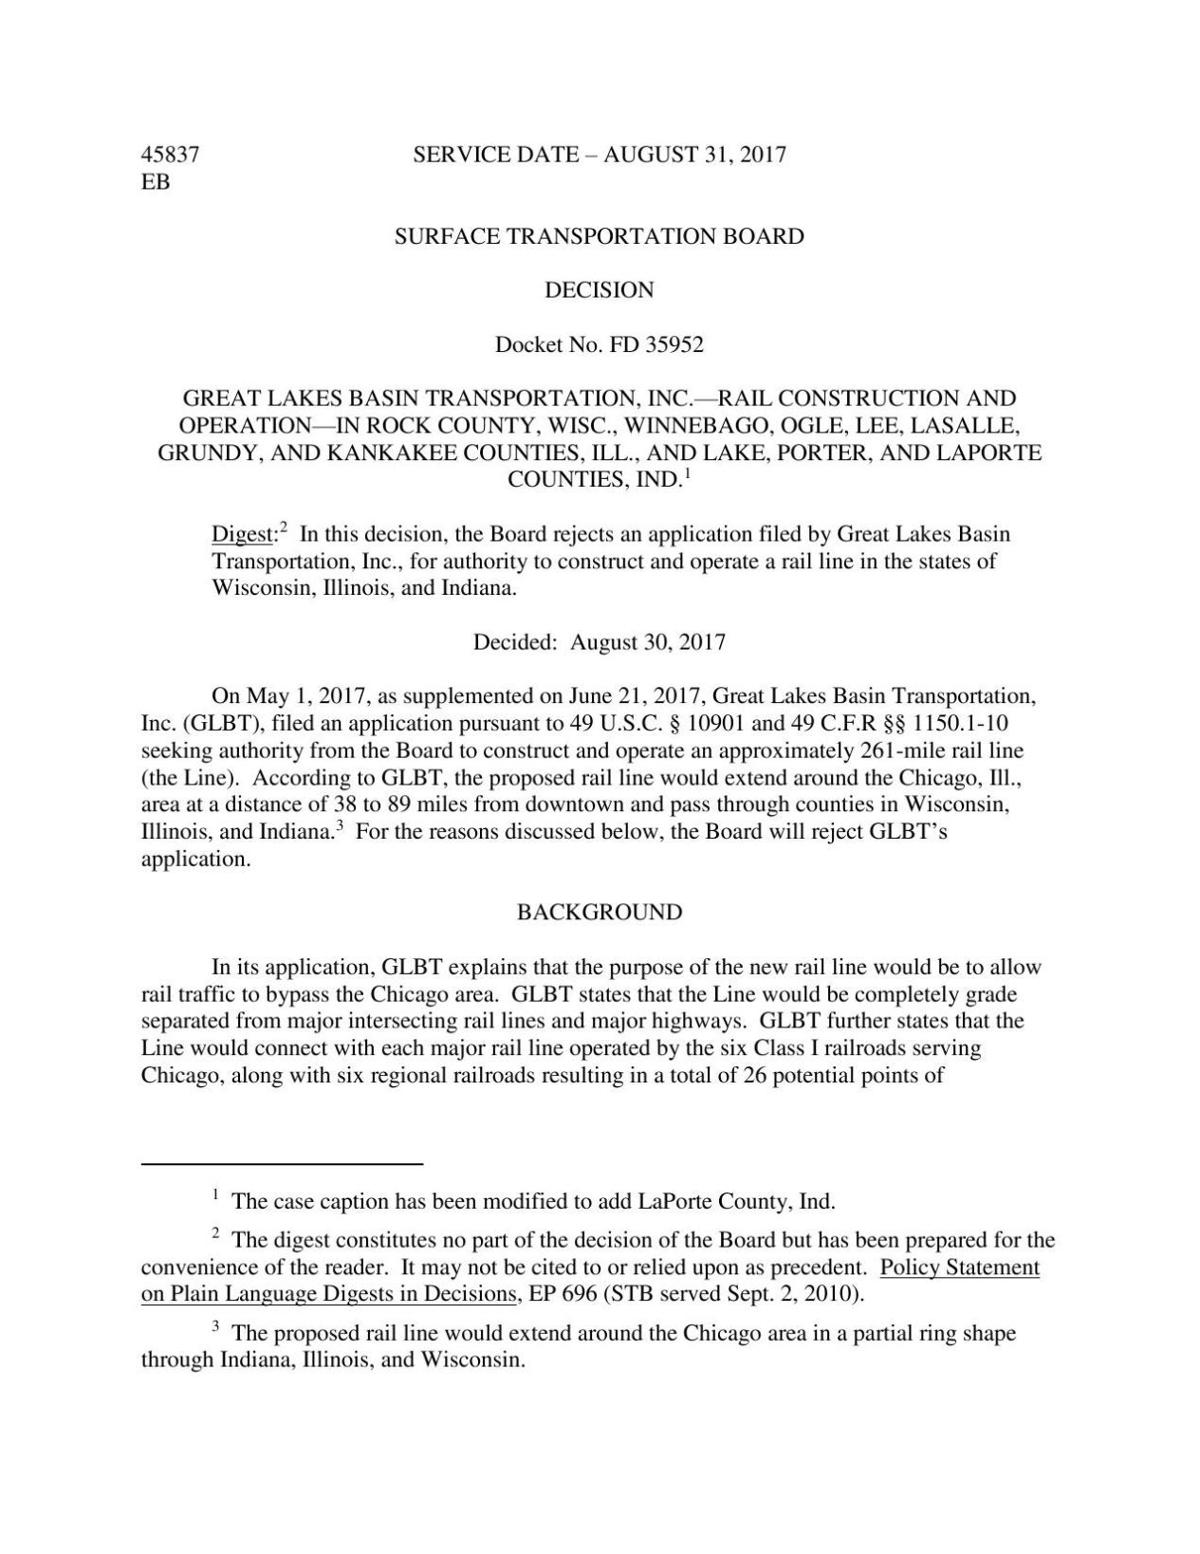 STB ruling on GLBT railroad